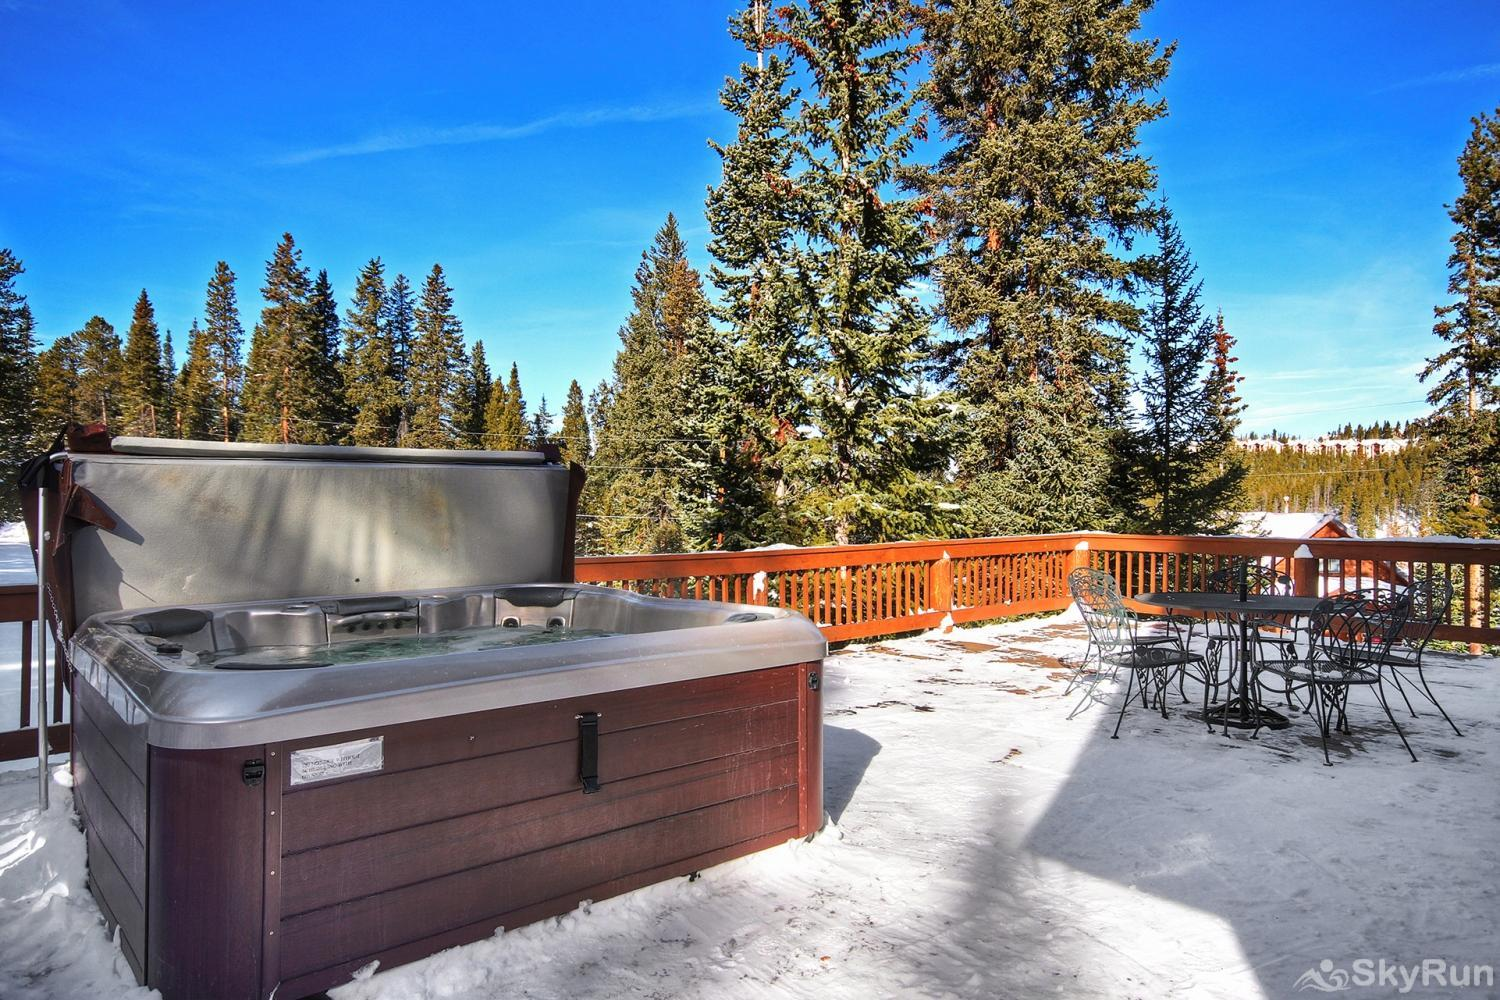 The Sly Fox Hideaway Stay warm in your private hot tub